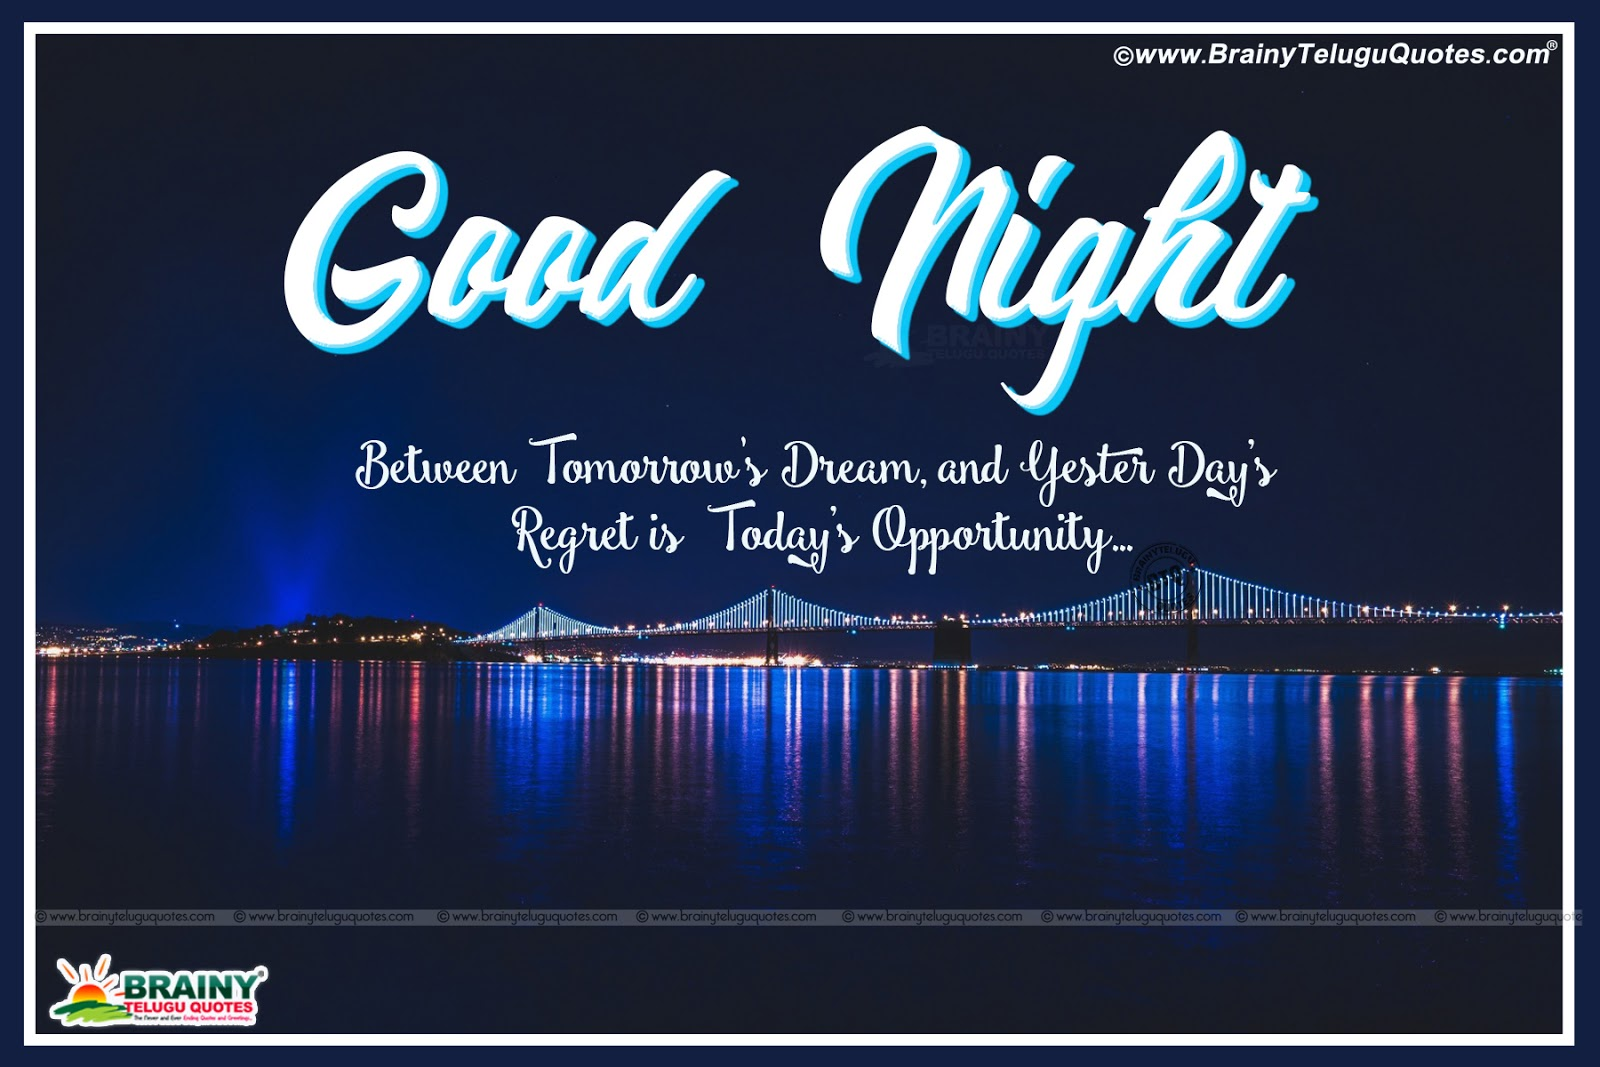 Good Night Motivational Quotes In English: English Inspirational Good Night Messages-Inspirational